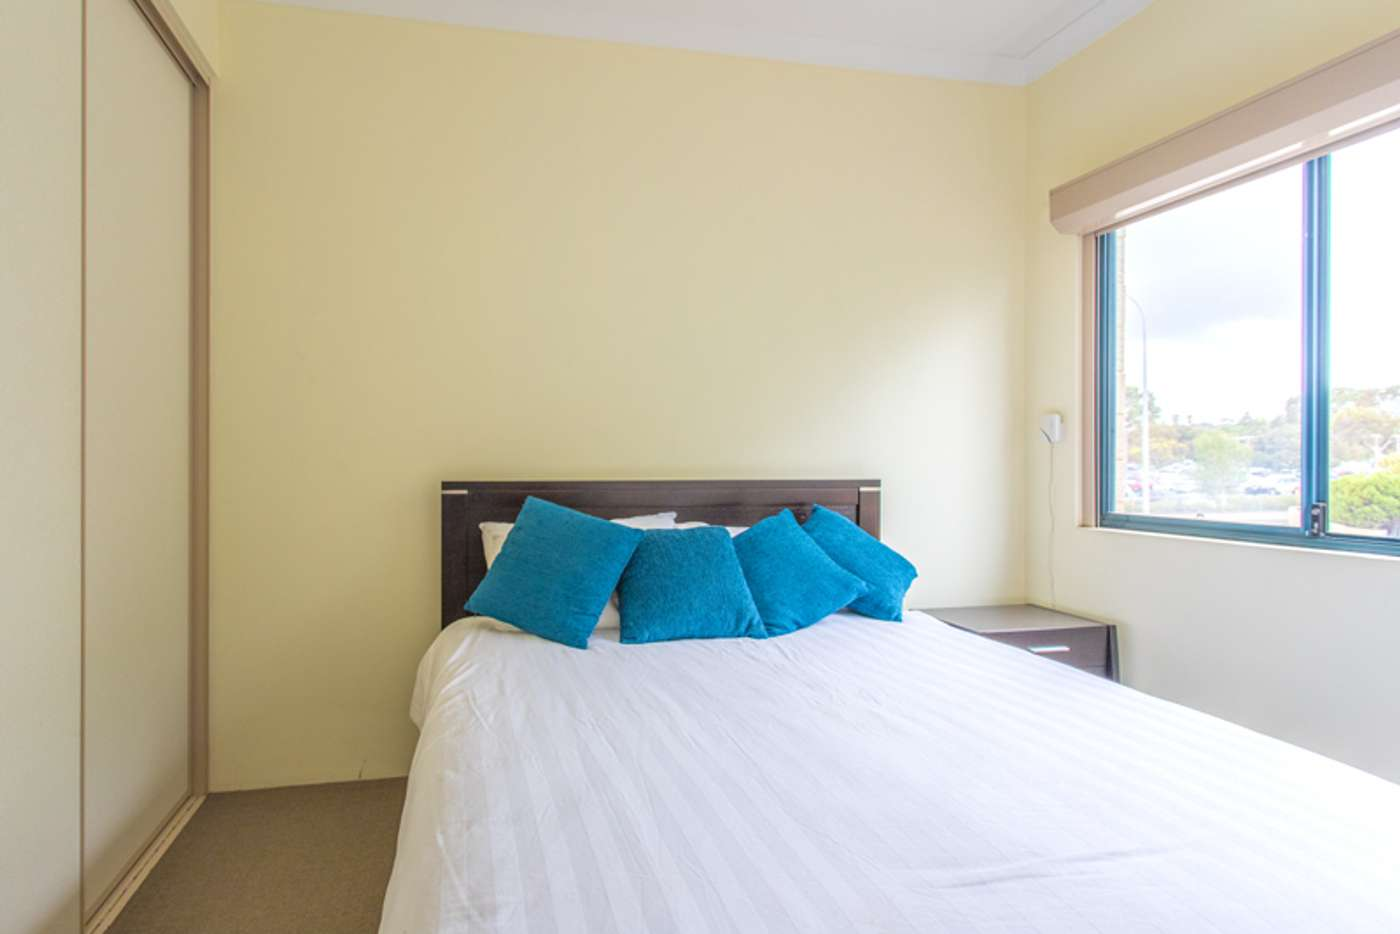 Sixth view of Homely unit listing, Unit 14/39 Currambine Bvd, Currambine WA 6028